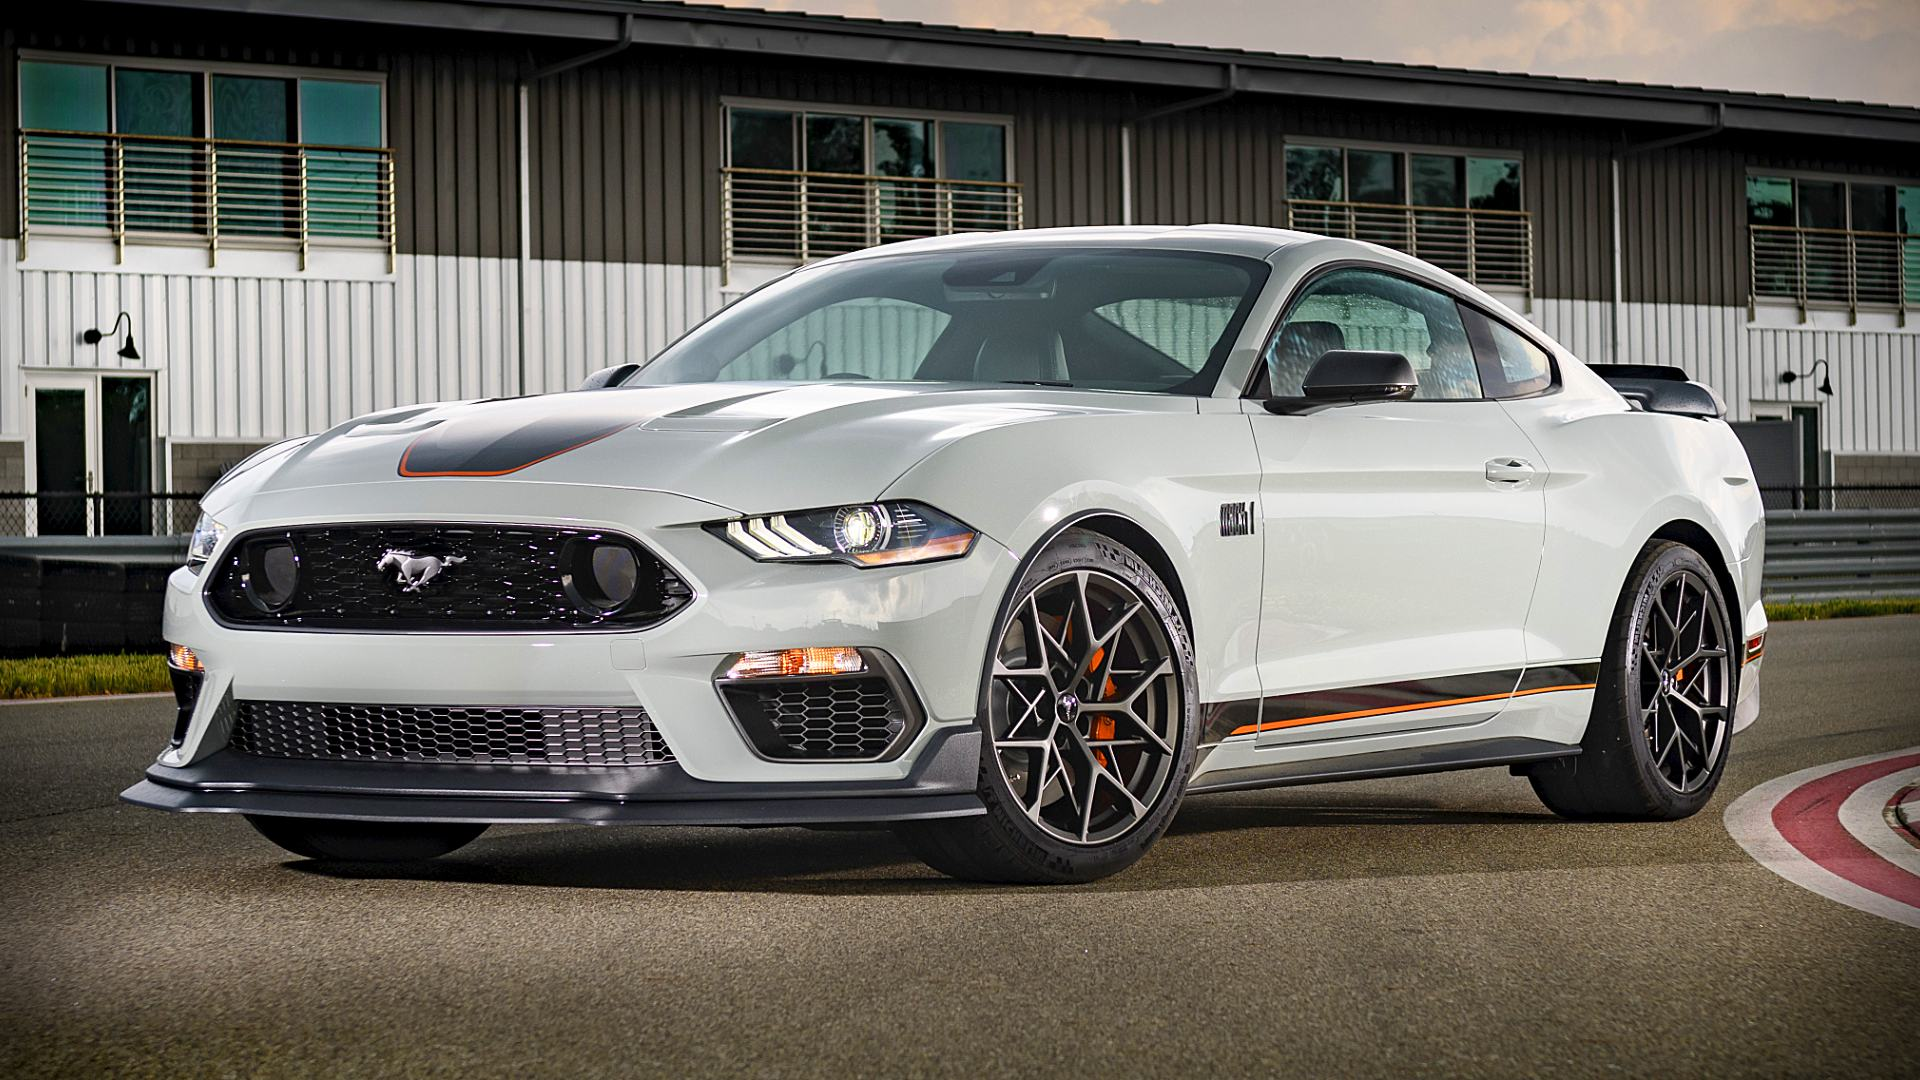 2020 Mustang Mach 1 - 2021 Ford Mustang Mach 1 Reveal ...